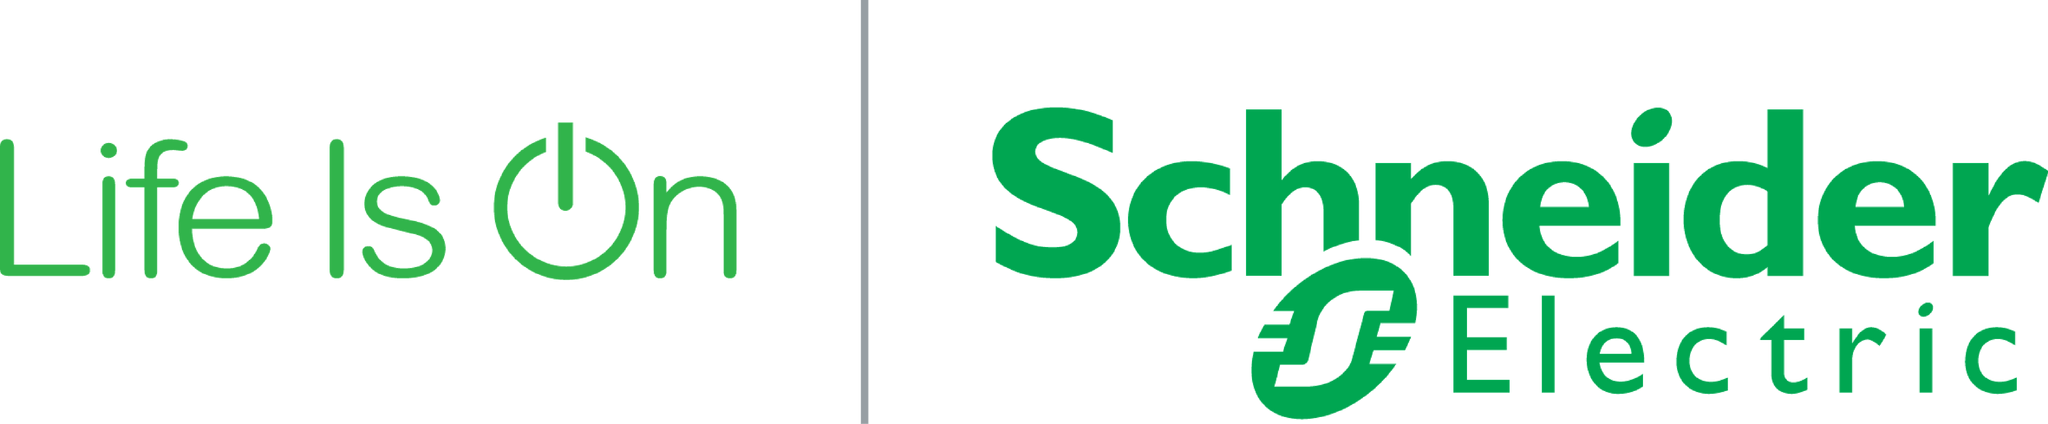 Weigert Elektronik GmbH – Schneider Electric